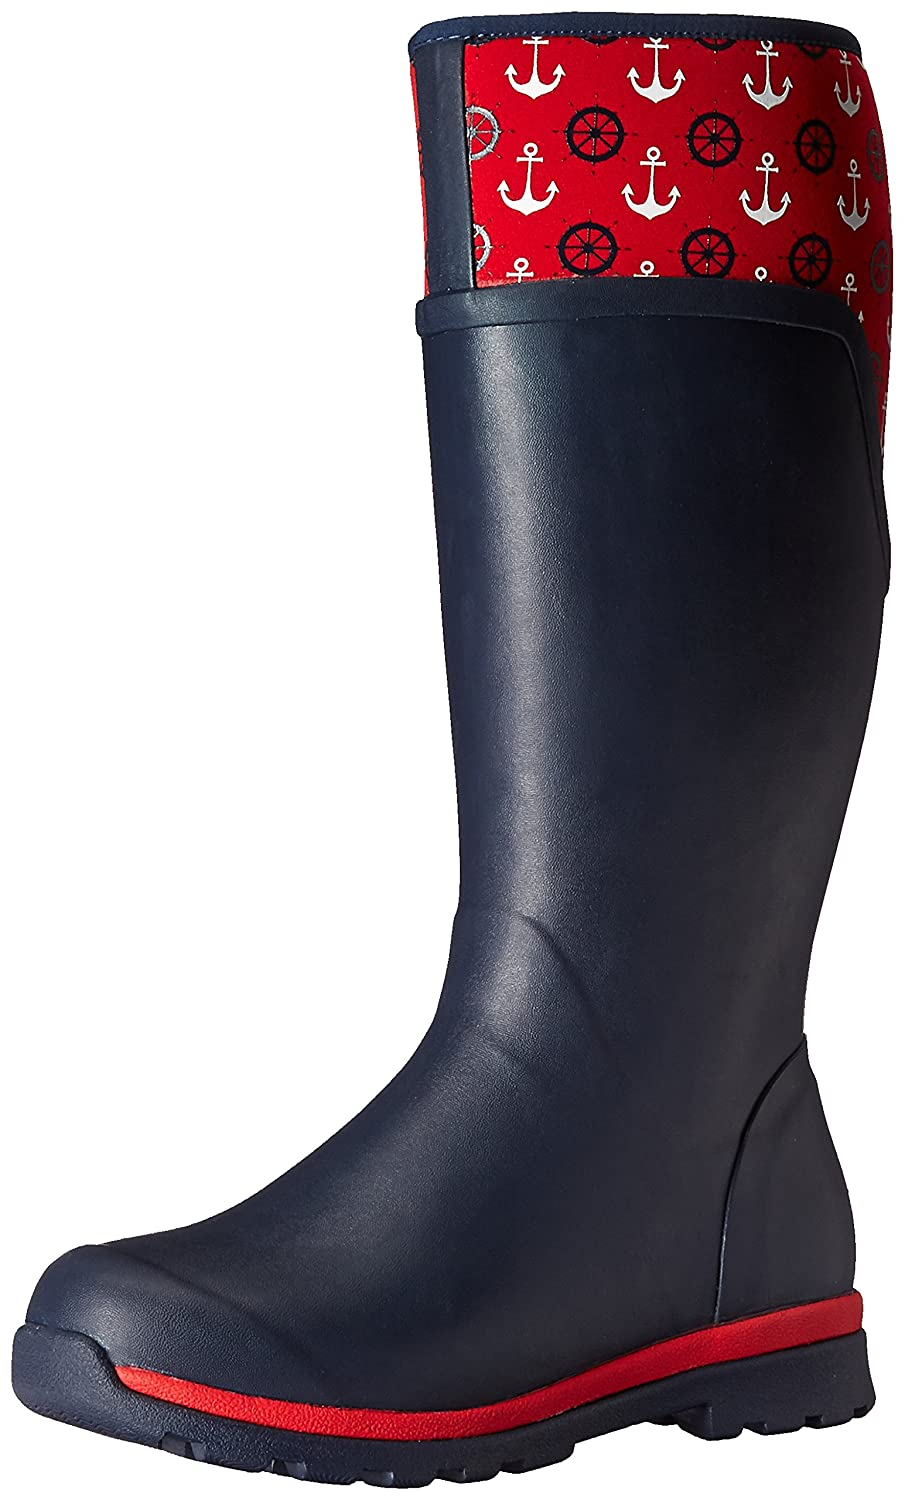 Navy With Red Anchors Muck Boot Womens Cambridge Tall Snow Boot